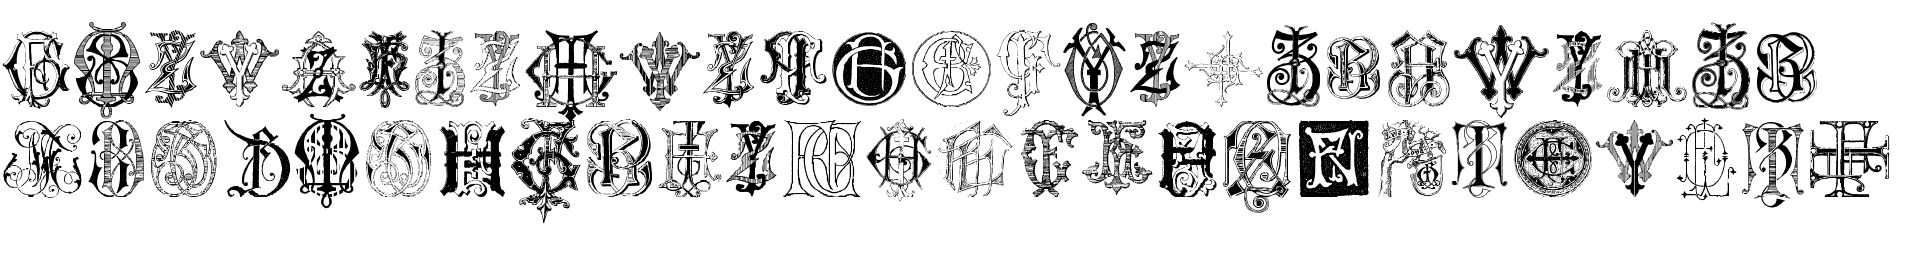 Intellecta Monograms Random Samples Seven